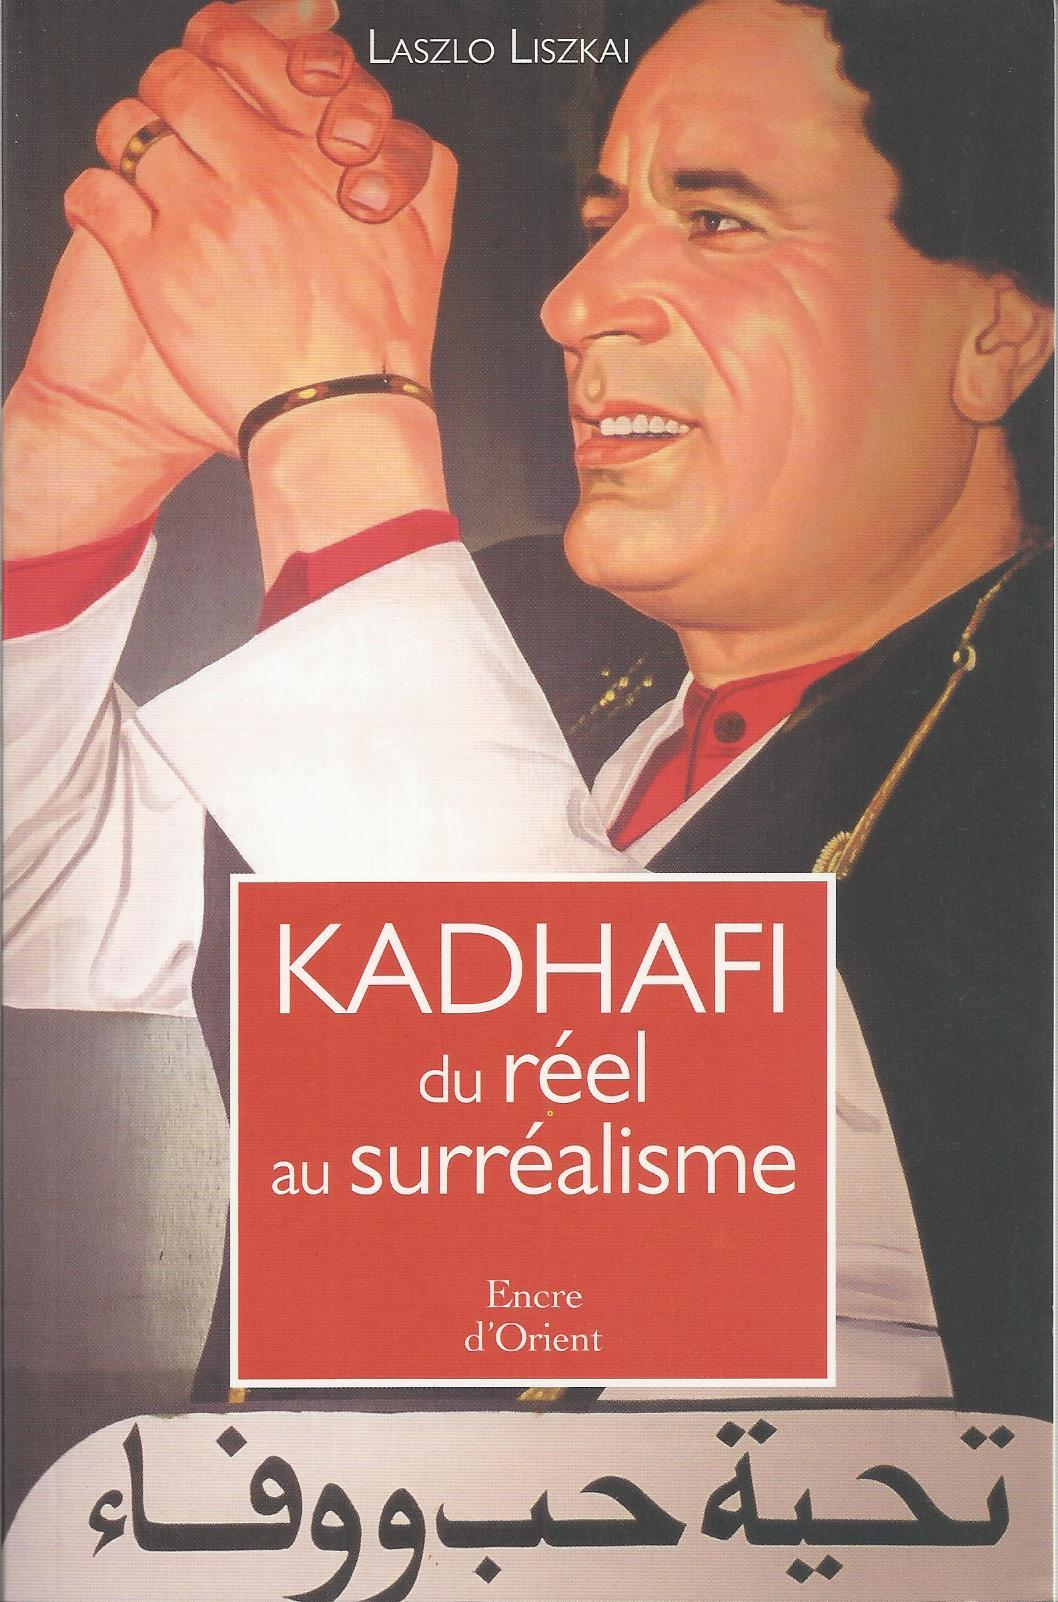 KHADAFI DU REEL AU SURREALISME